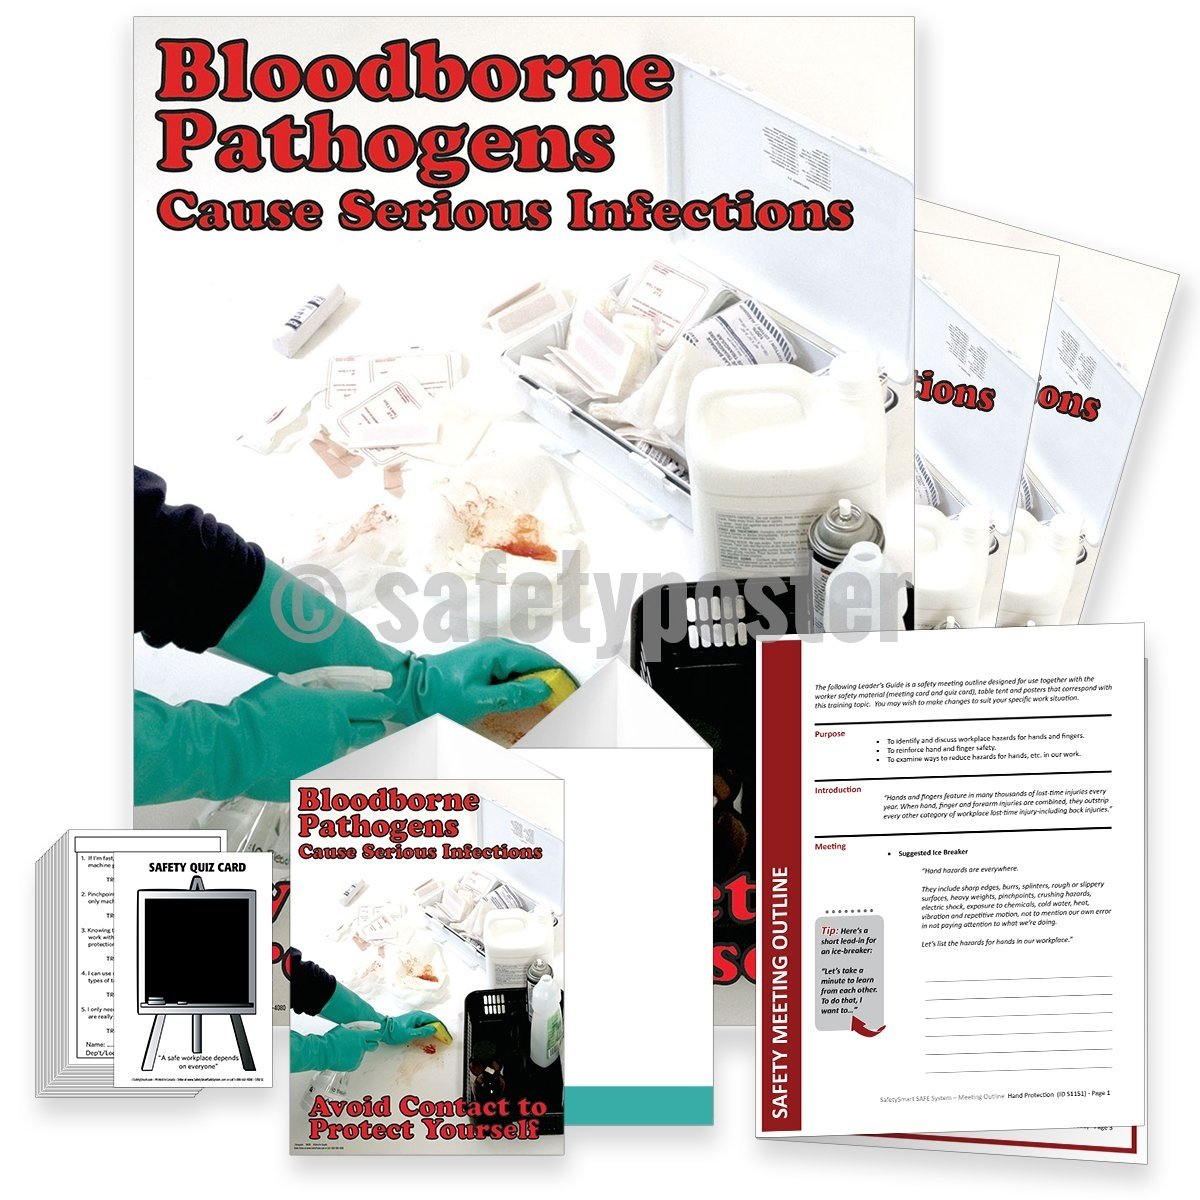 Safety Meeting Kit - Bloodborne Pathogens Cause Serious Infections Kits